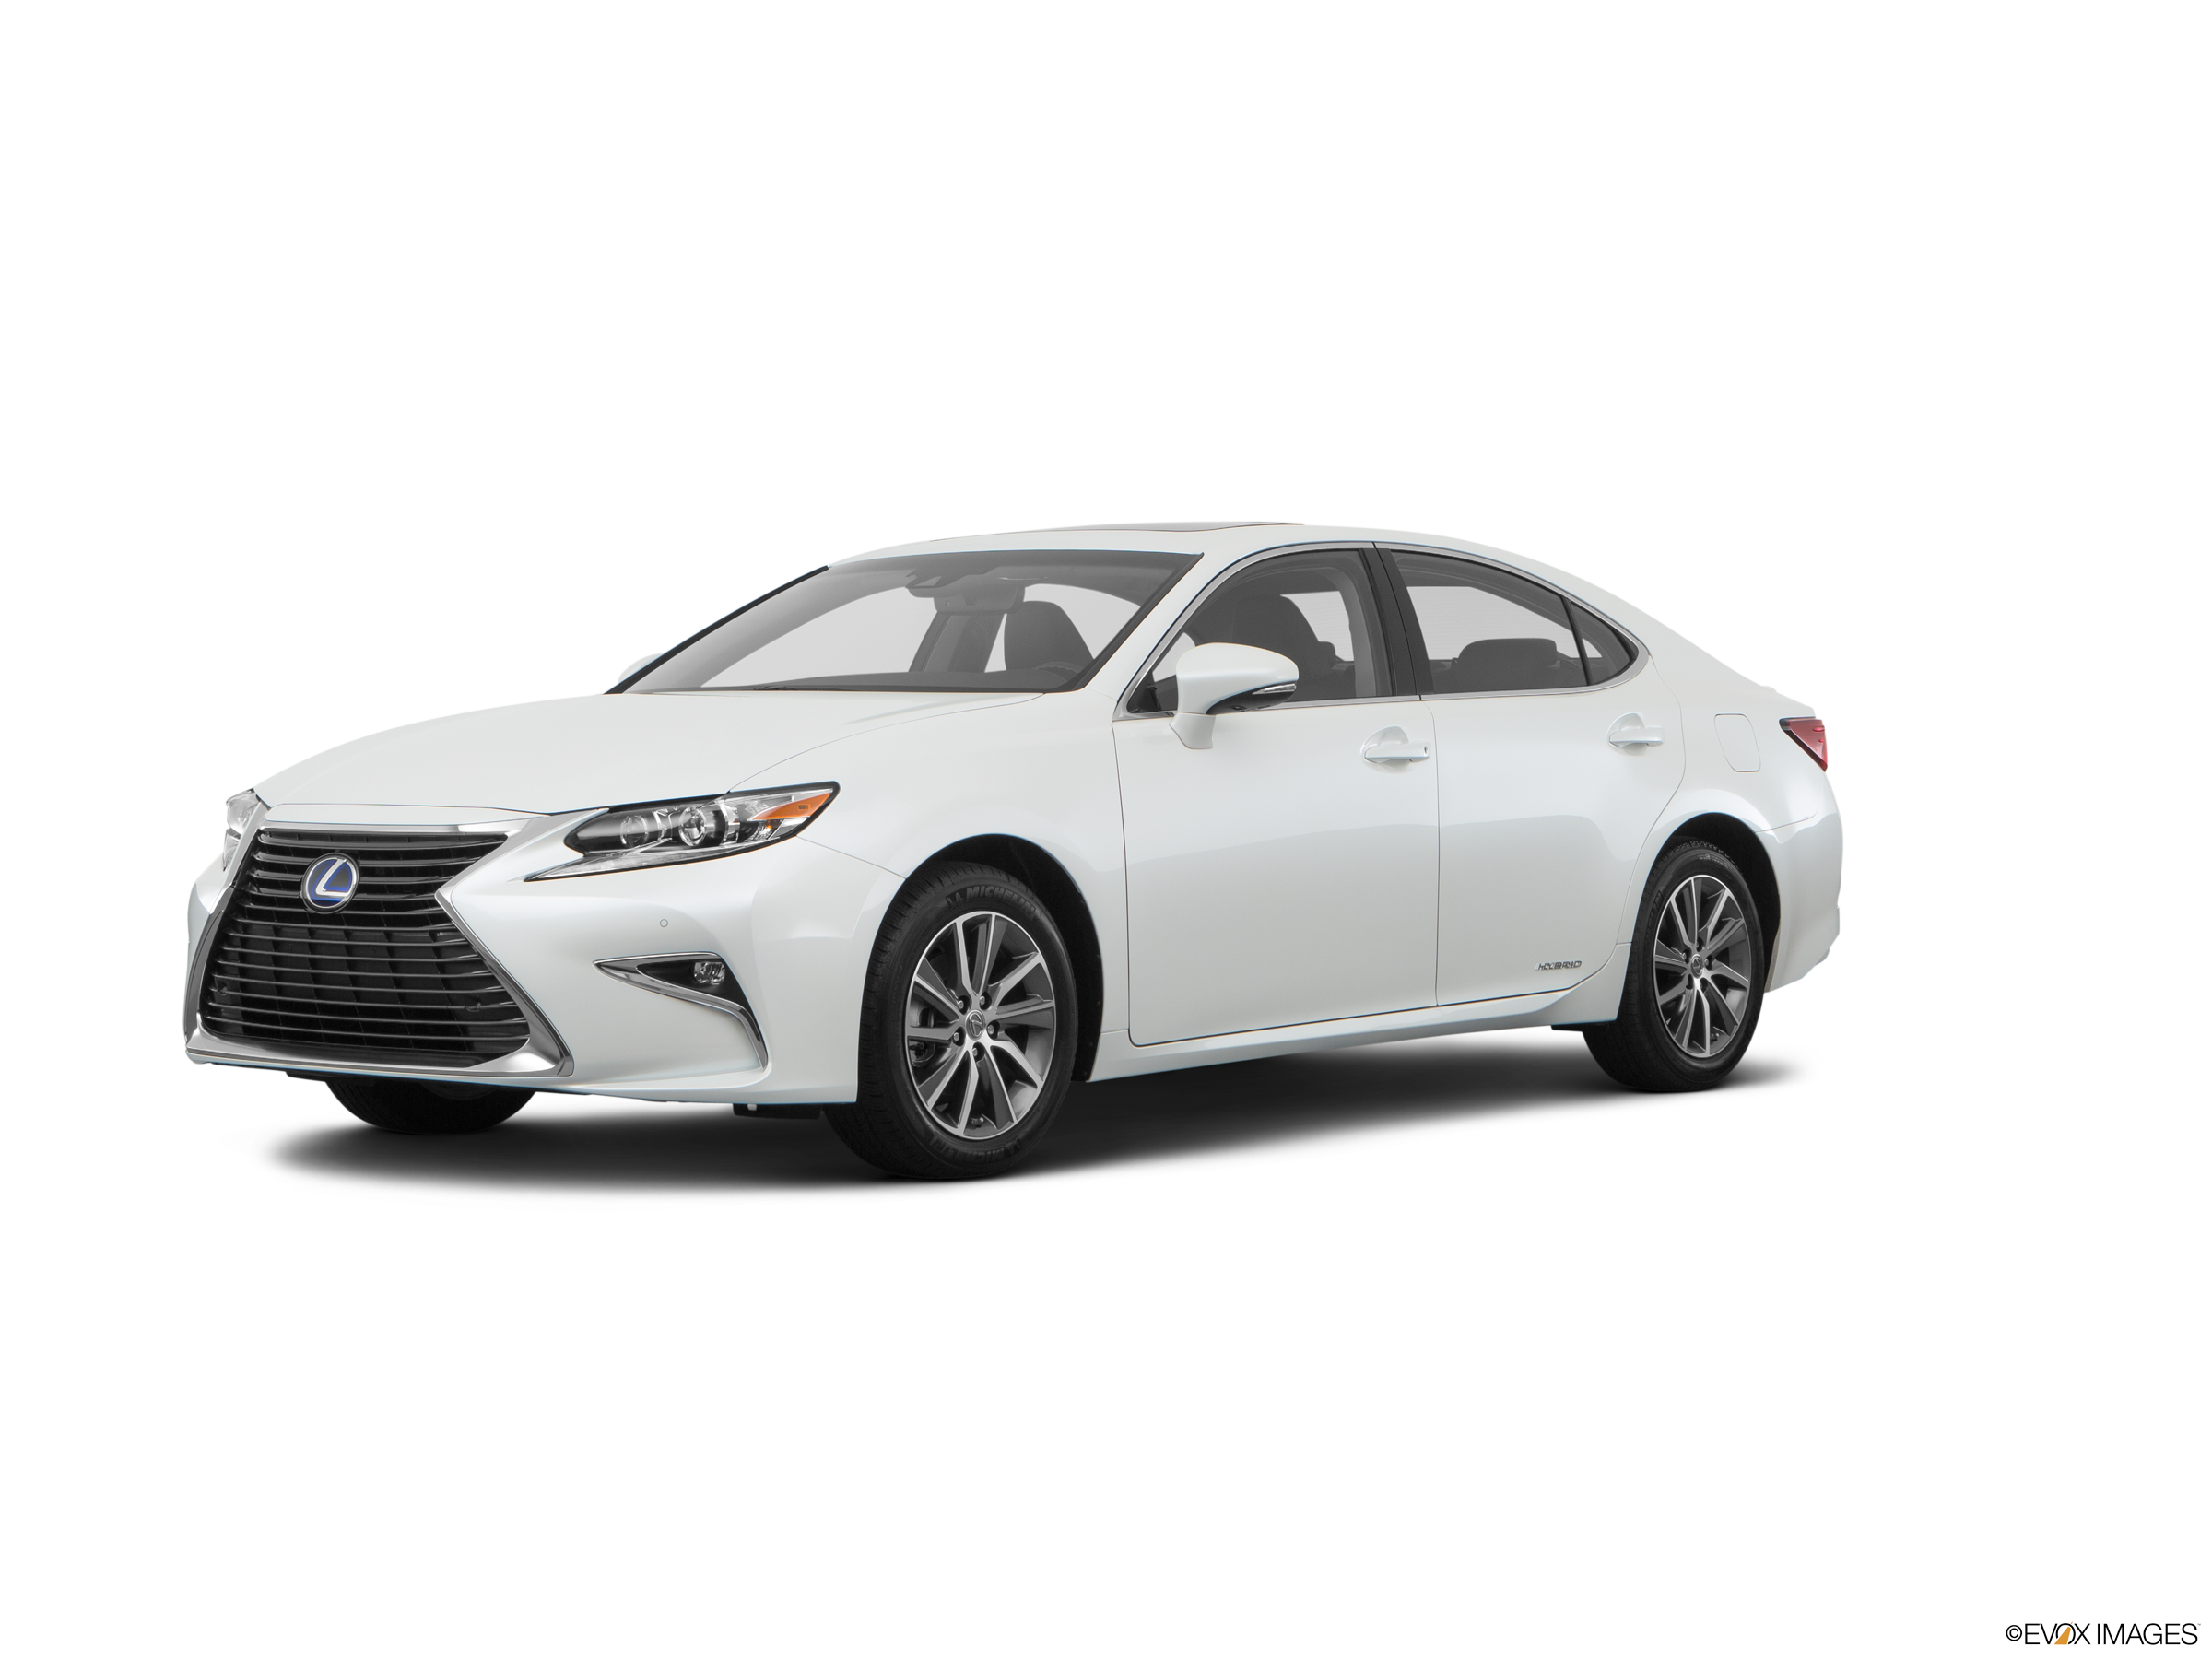 Most Fuel Efficient Luxury Vehicles of 2018 - 2018 Lexus ES